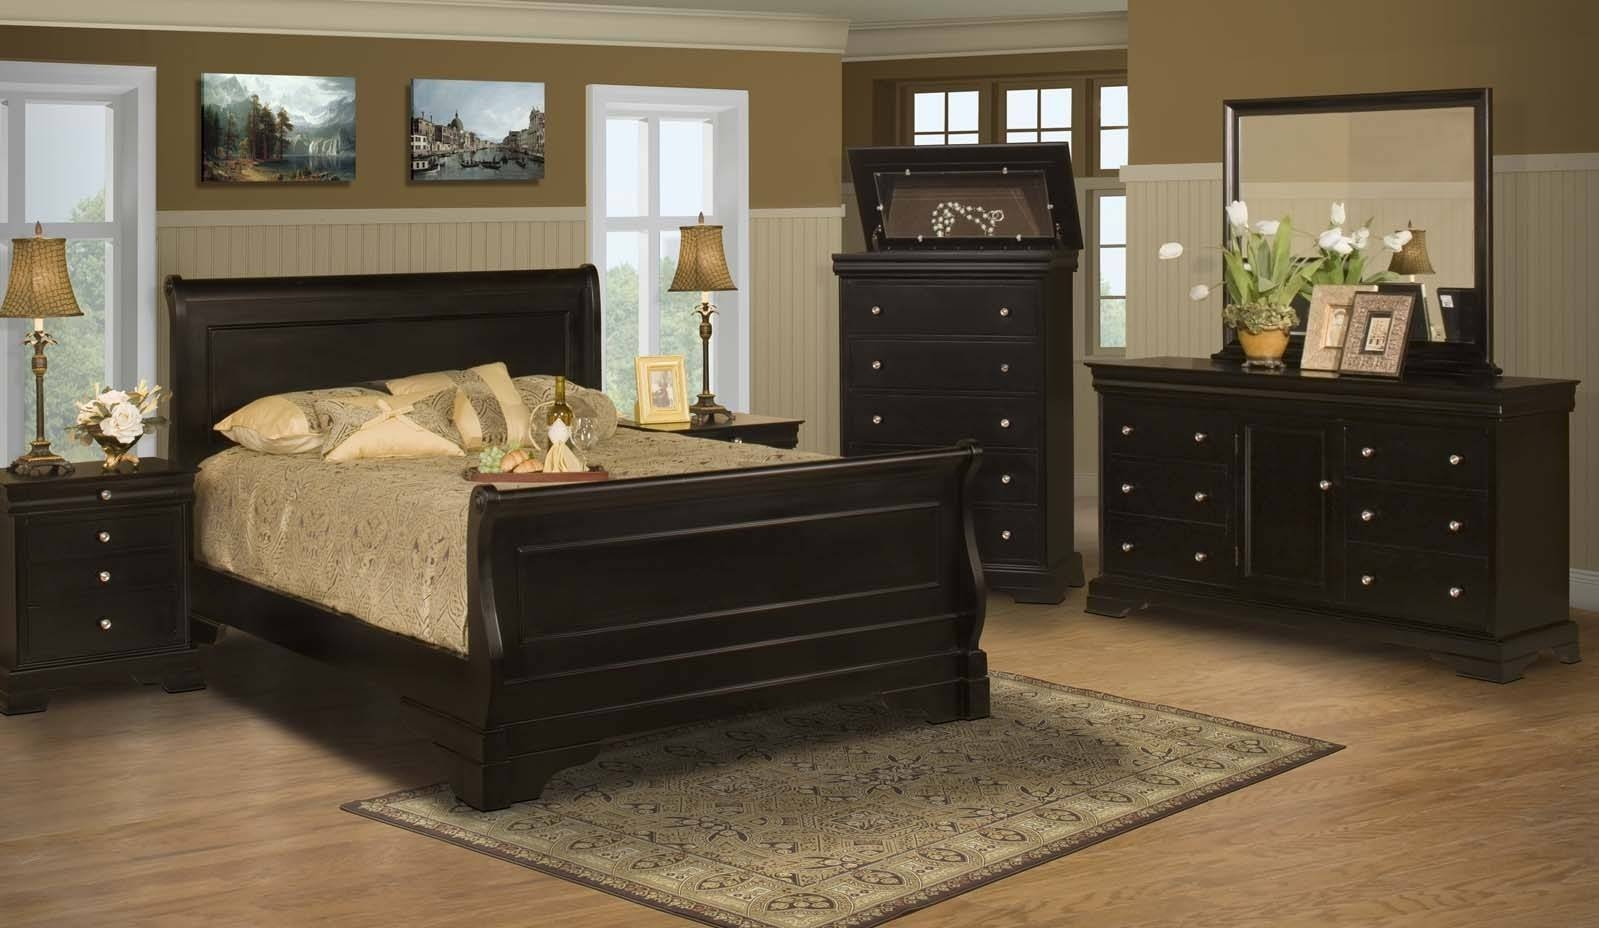 Stratford Black Cherry 5 Drawer Lift Top Chest For $ (View 21 of 30)